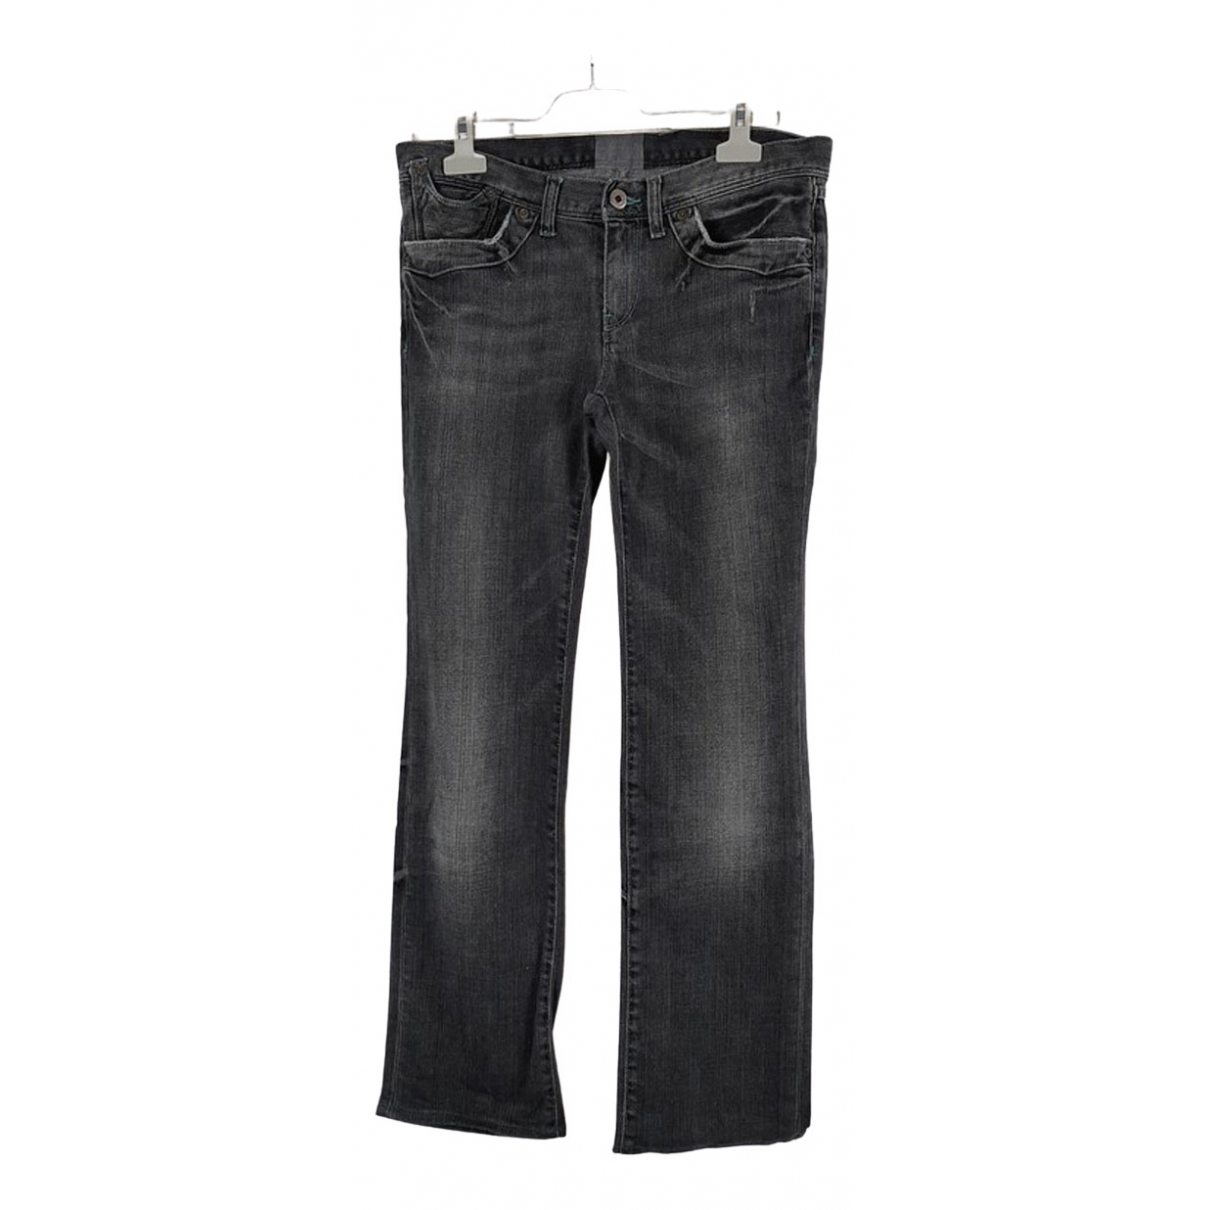 Polo Ralph Lauren \N Grey Cotton - elasthane Jeans for Women 39 FR